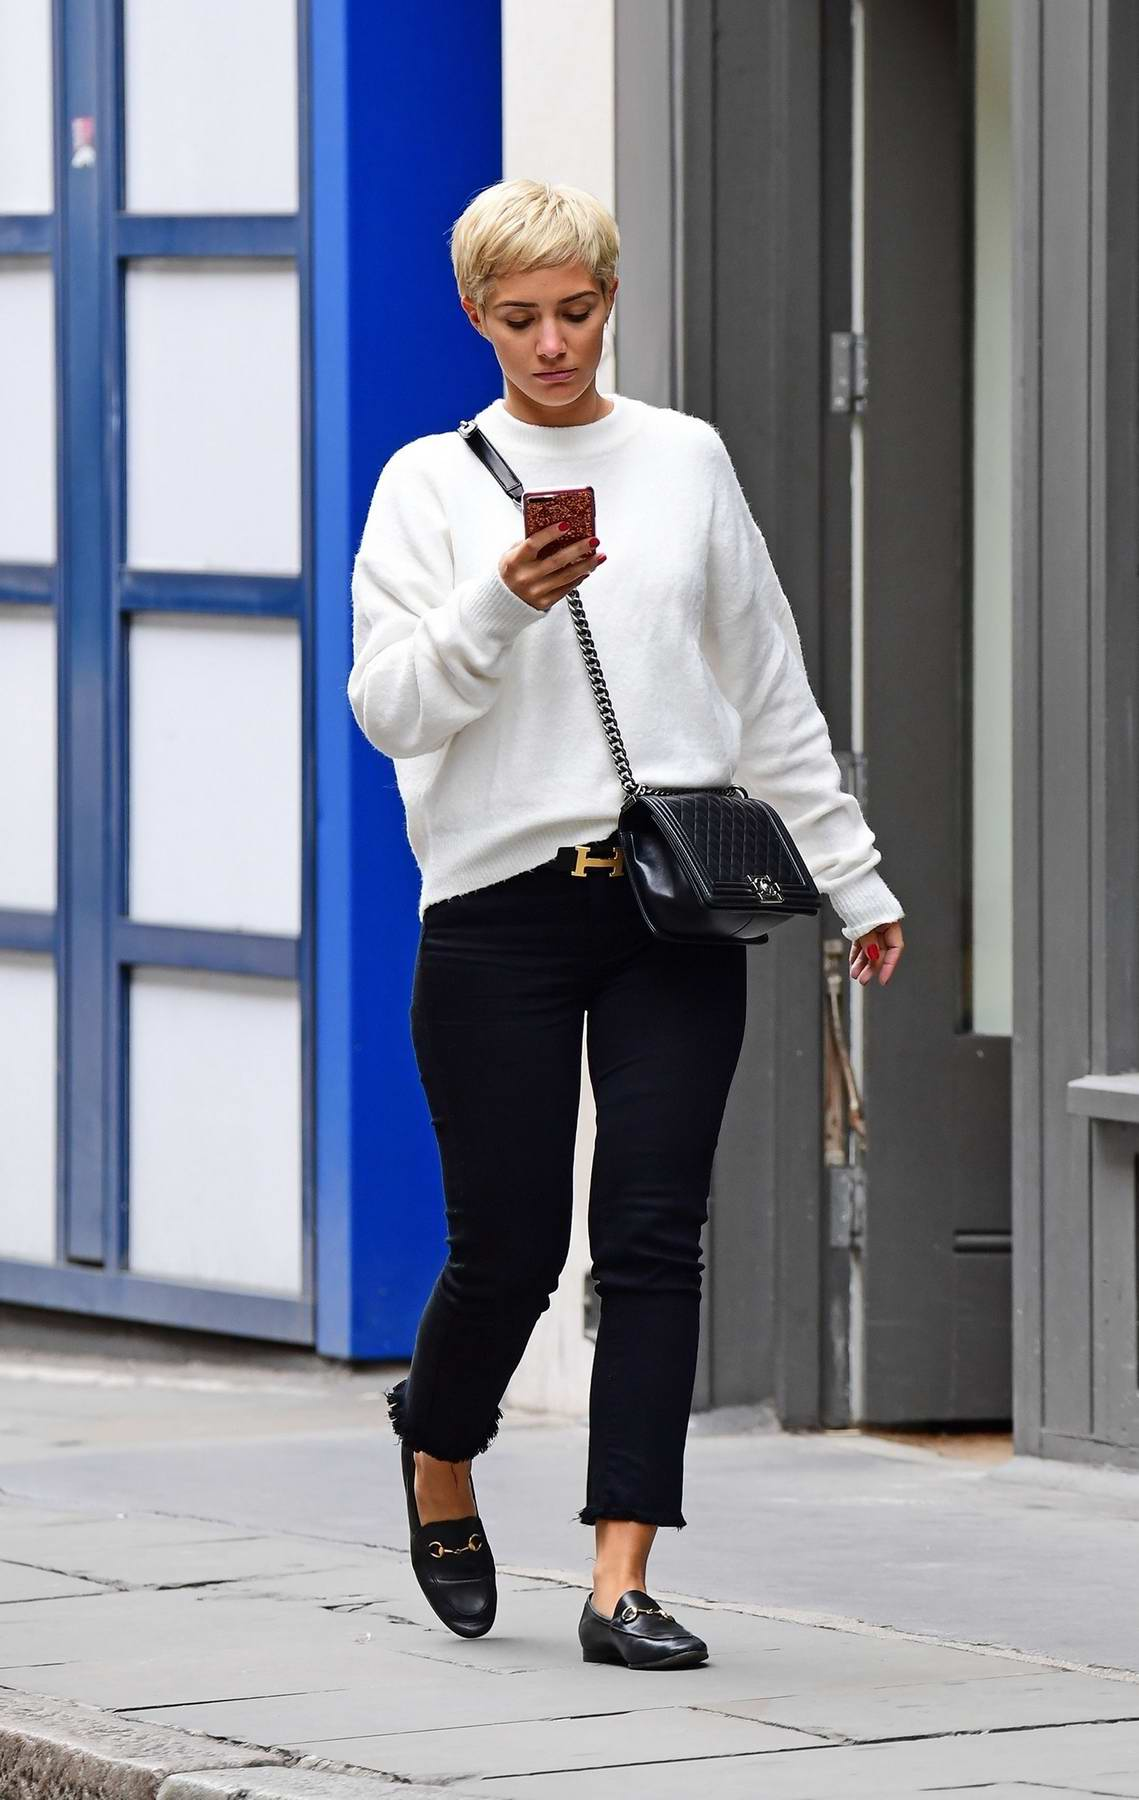 Frankie Bridge is spotted out and about in Soho, London